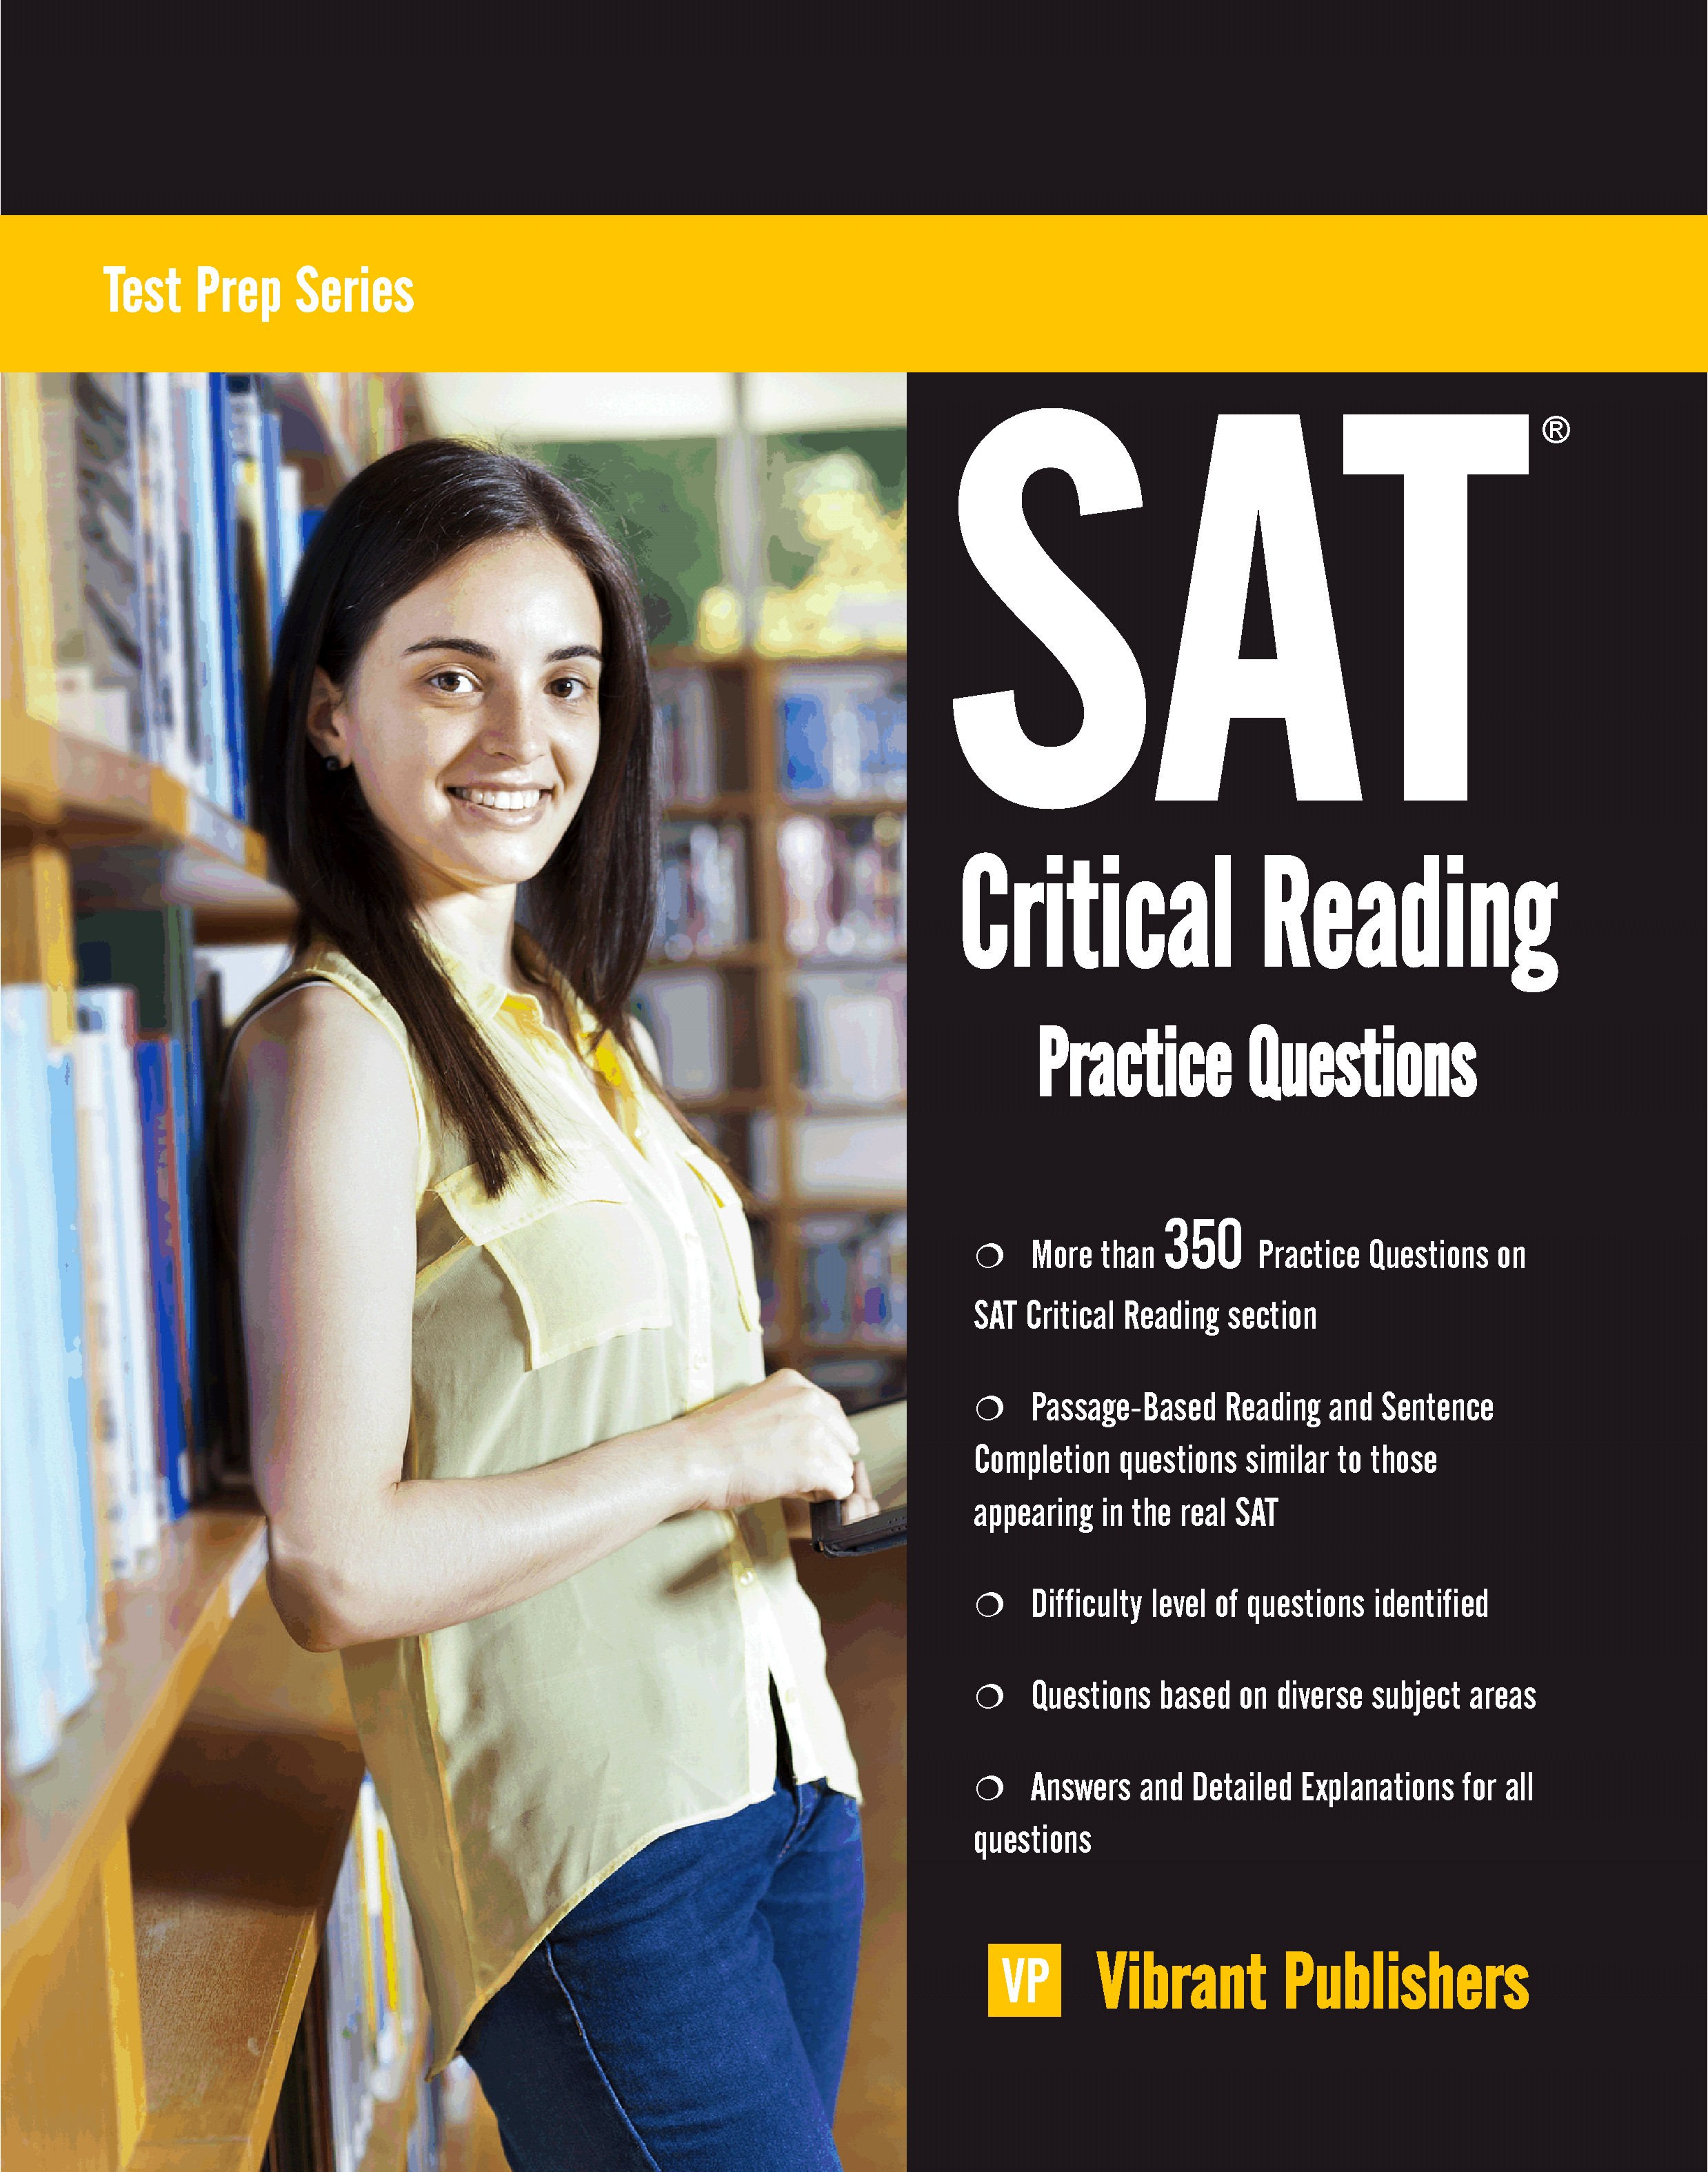 SAT Critical Reading Practice Questions, an Ebook by Vibrant Publishers